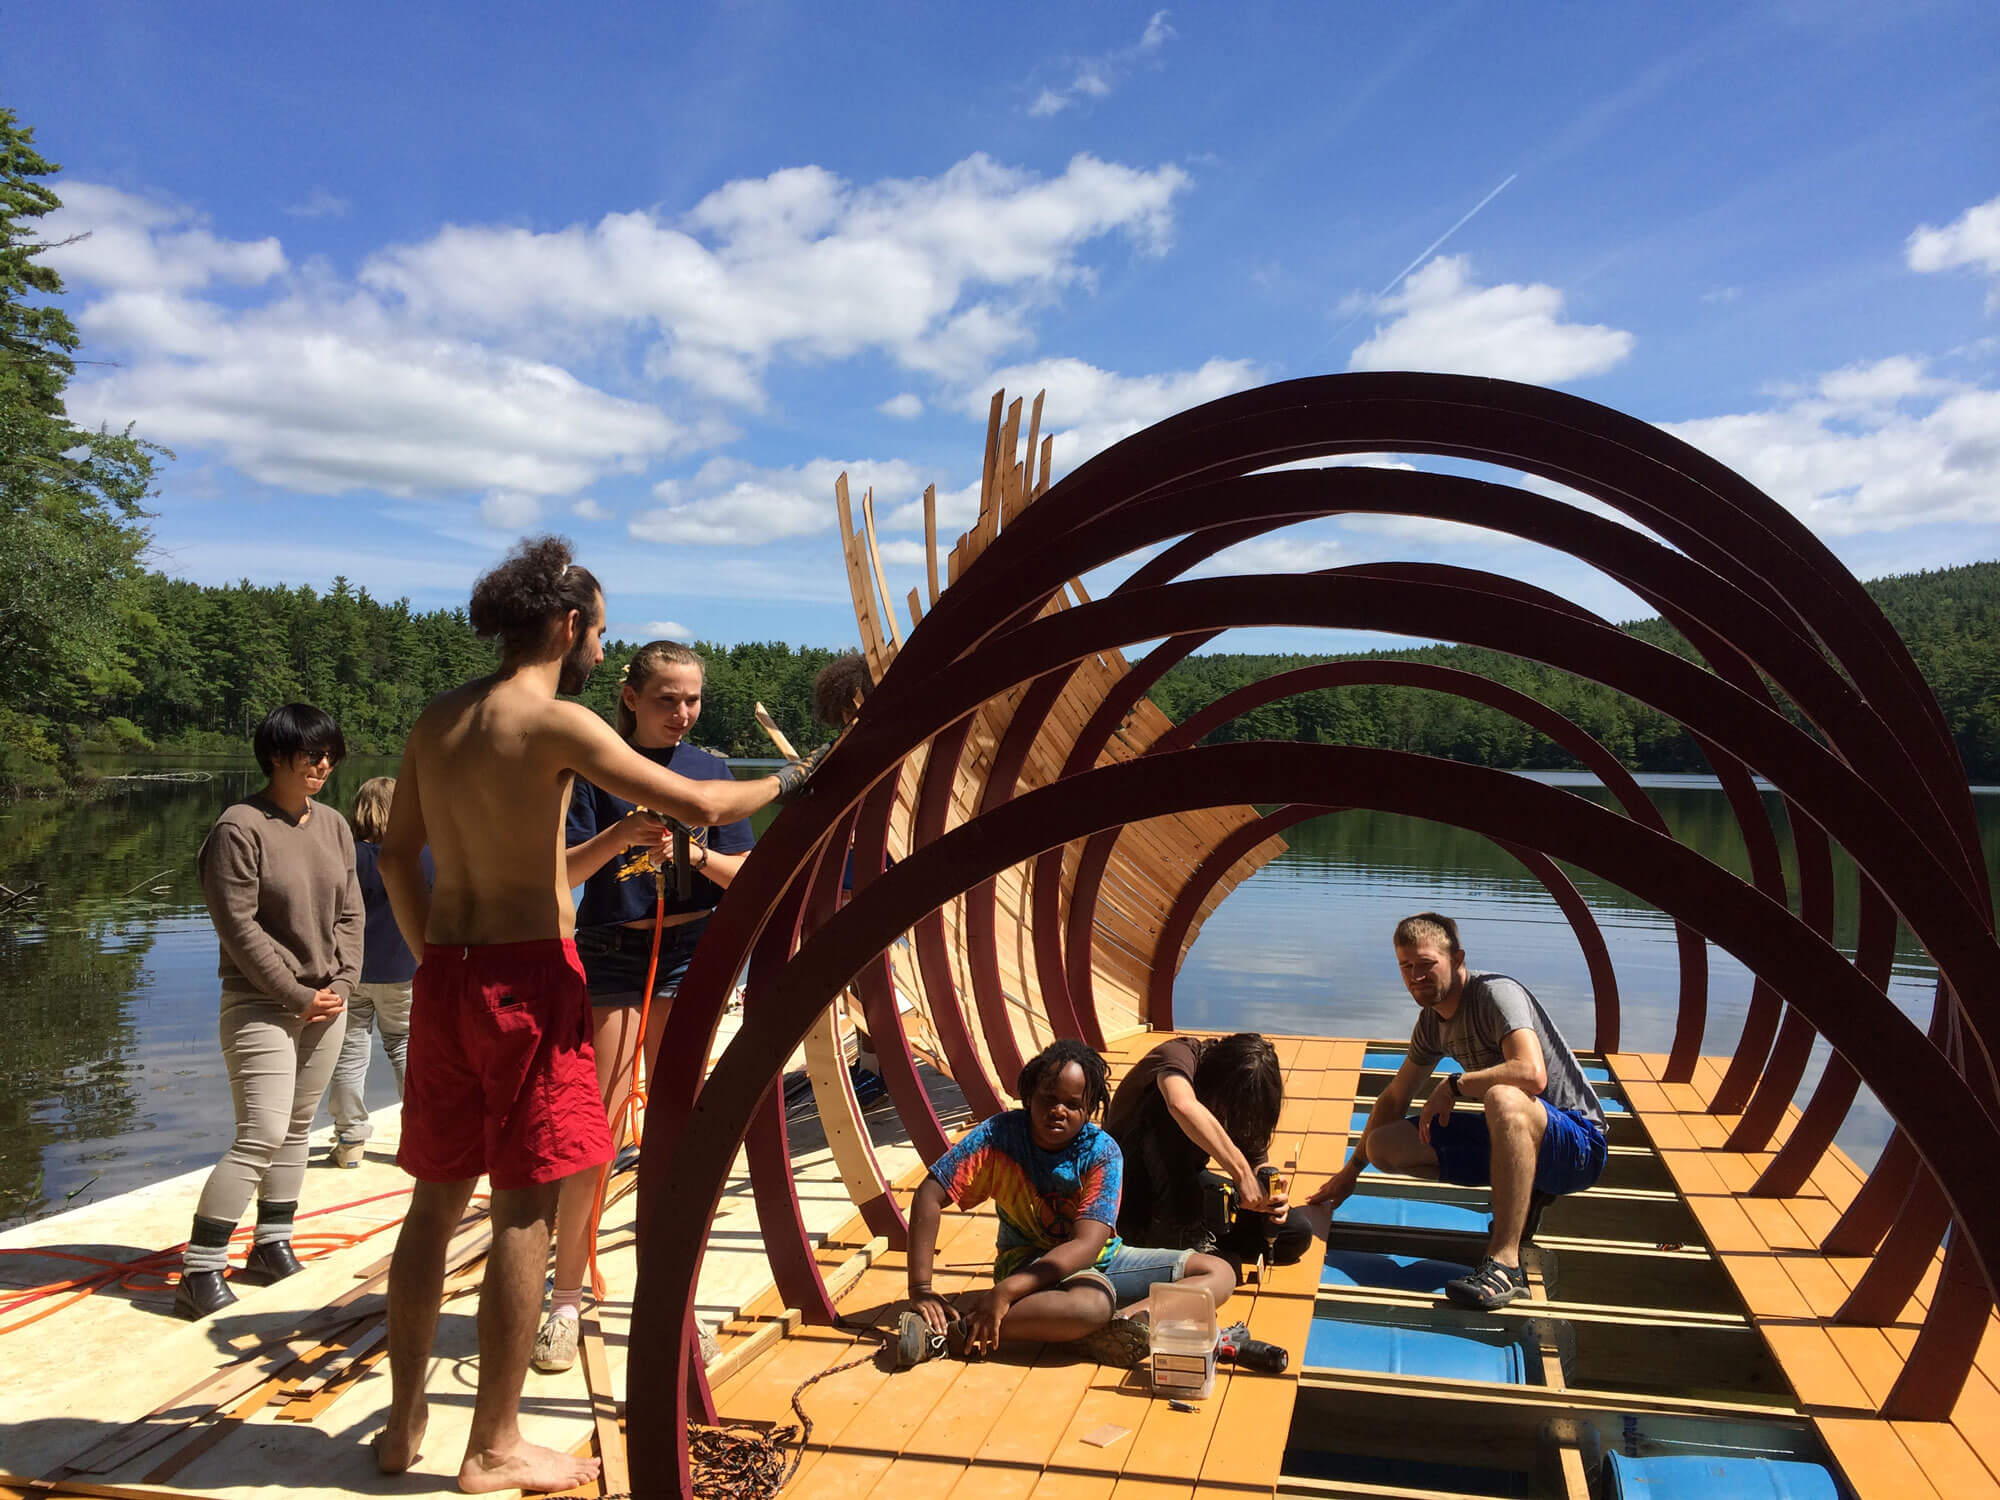 Creatura floating timber structure